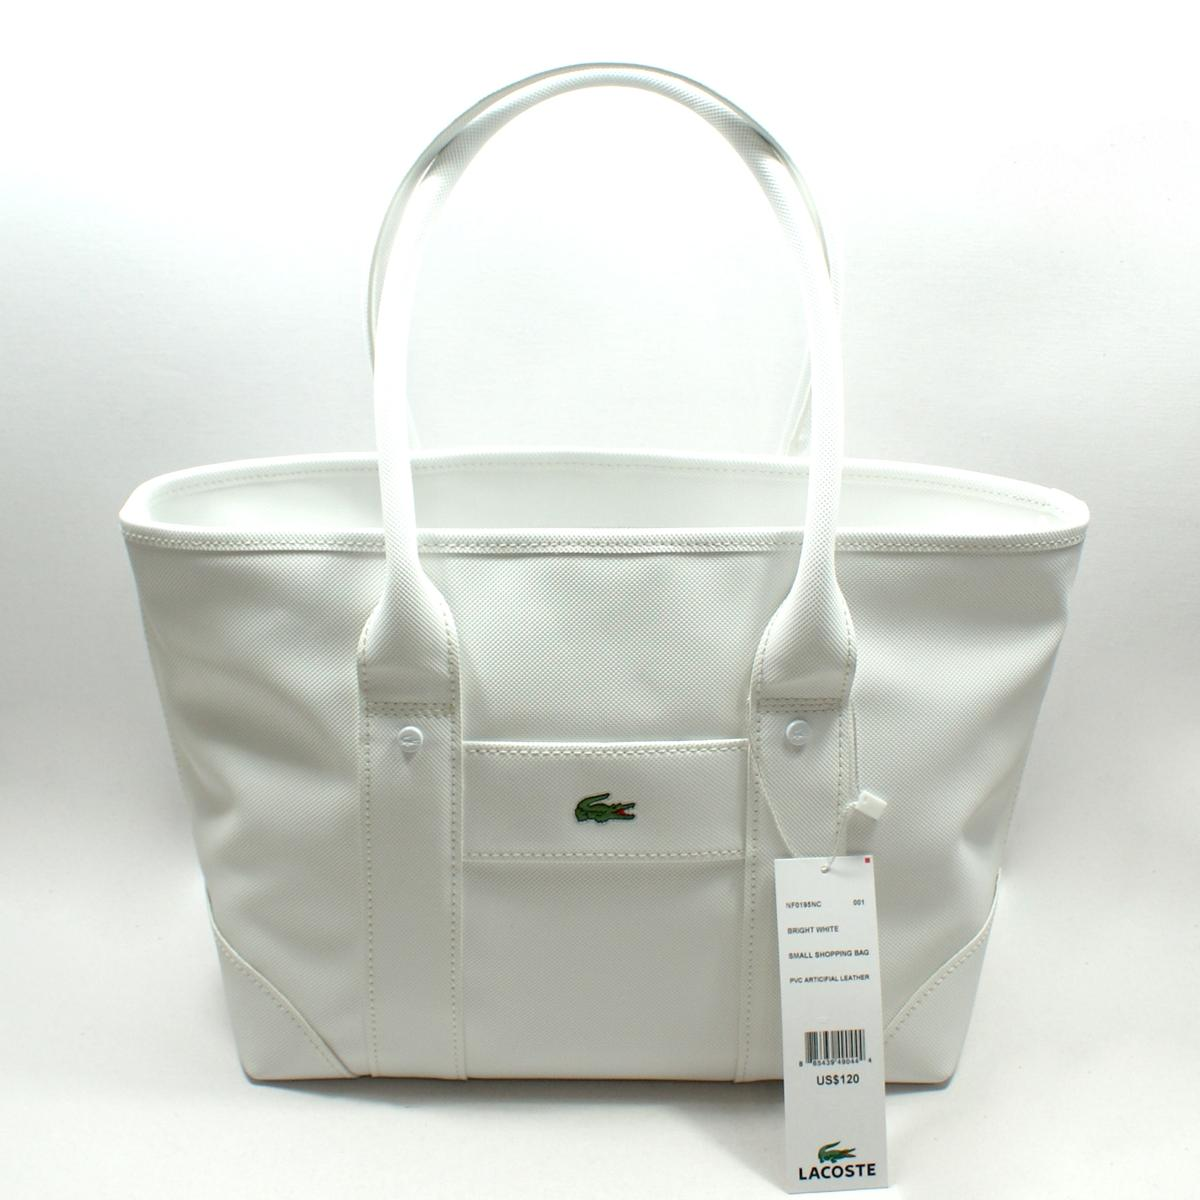 Lacoste Bright White Small Shopping Bag Tote Bag